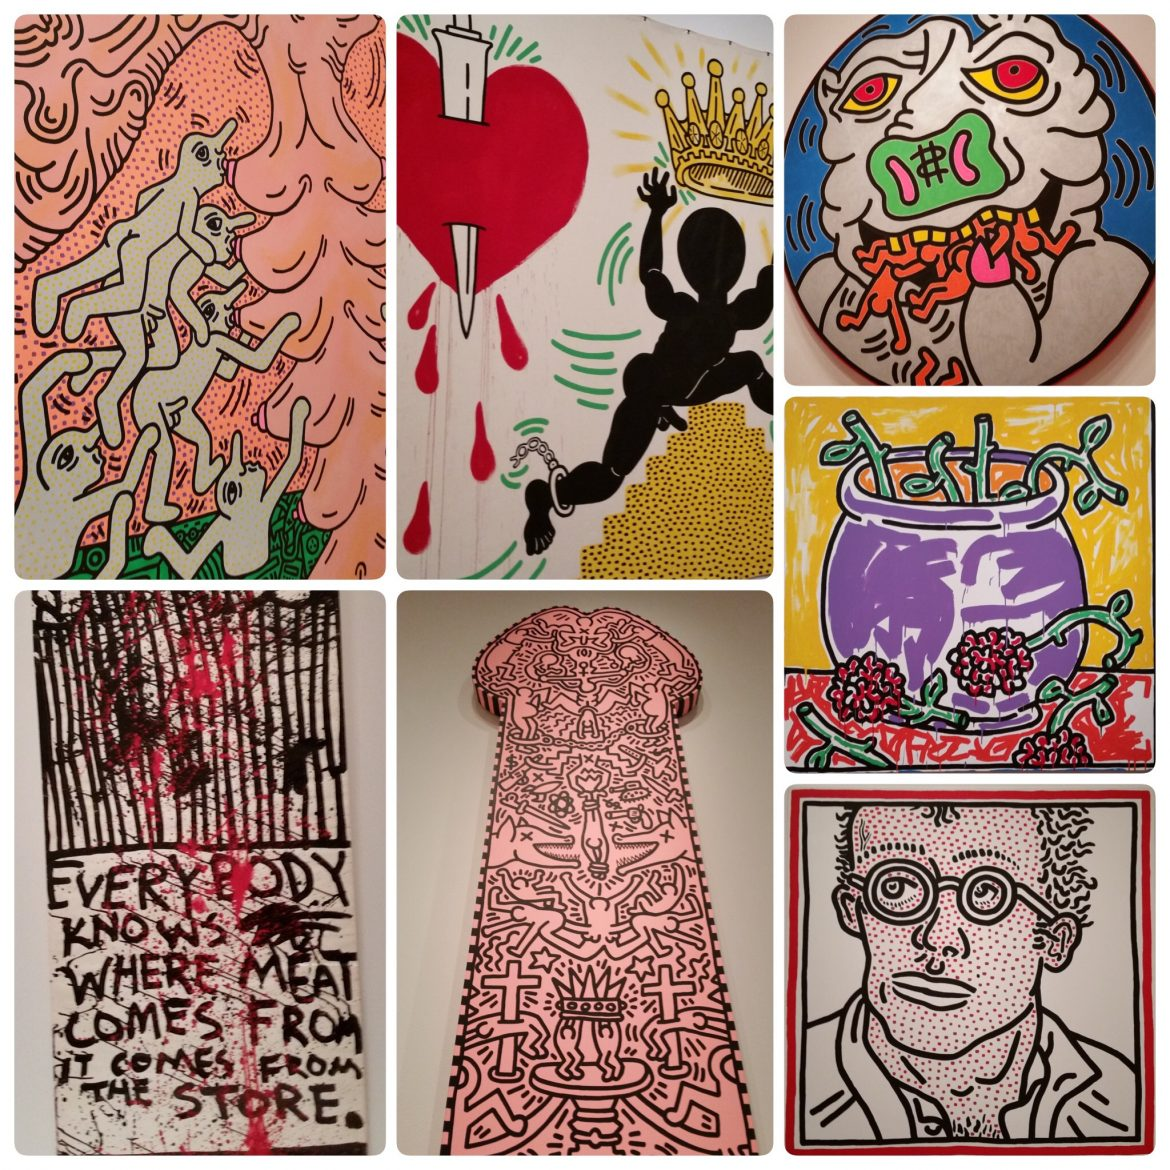 Keith Haring: The Political Line  Keith Haring: The Political Line image4